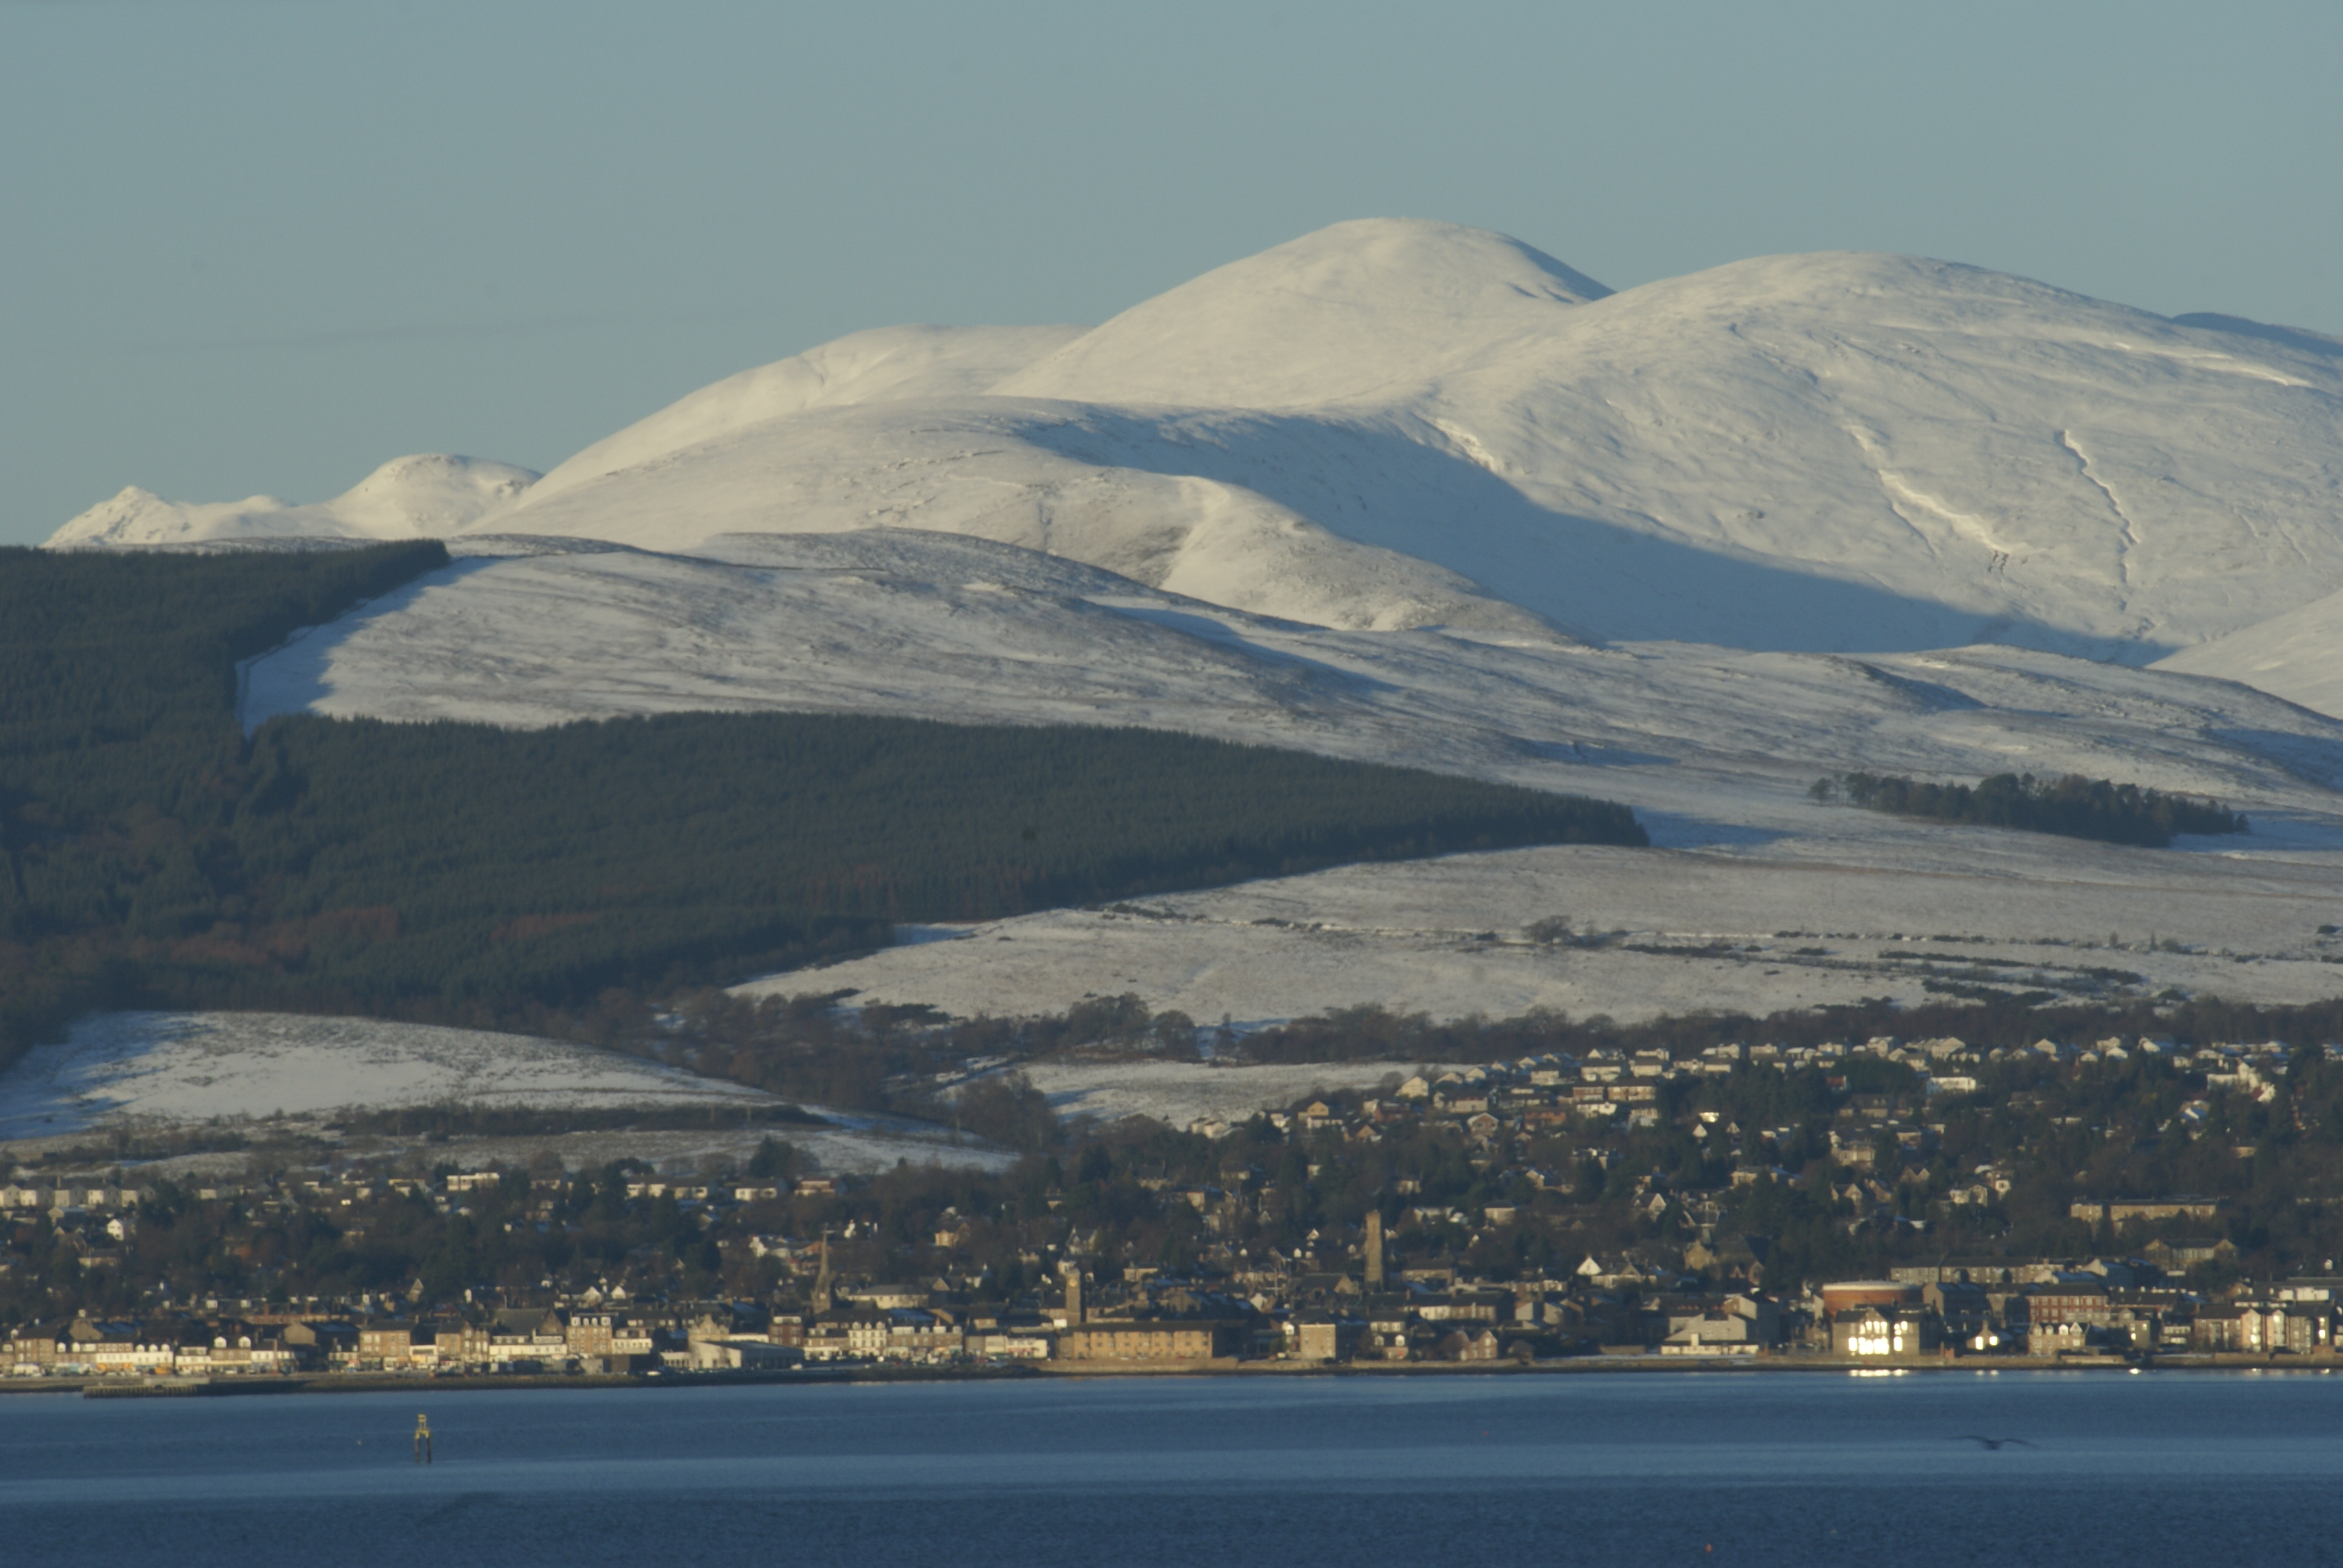 elensburgh, winter scene. Image captured through a telephoto lens from Greenock to the south.